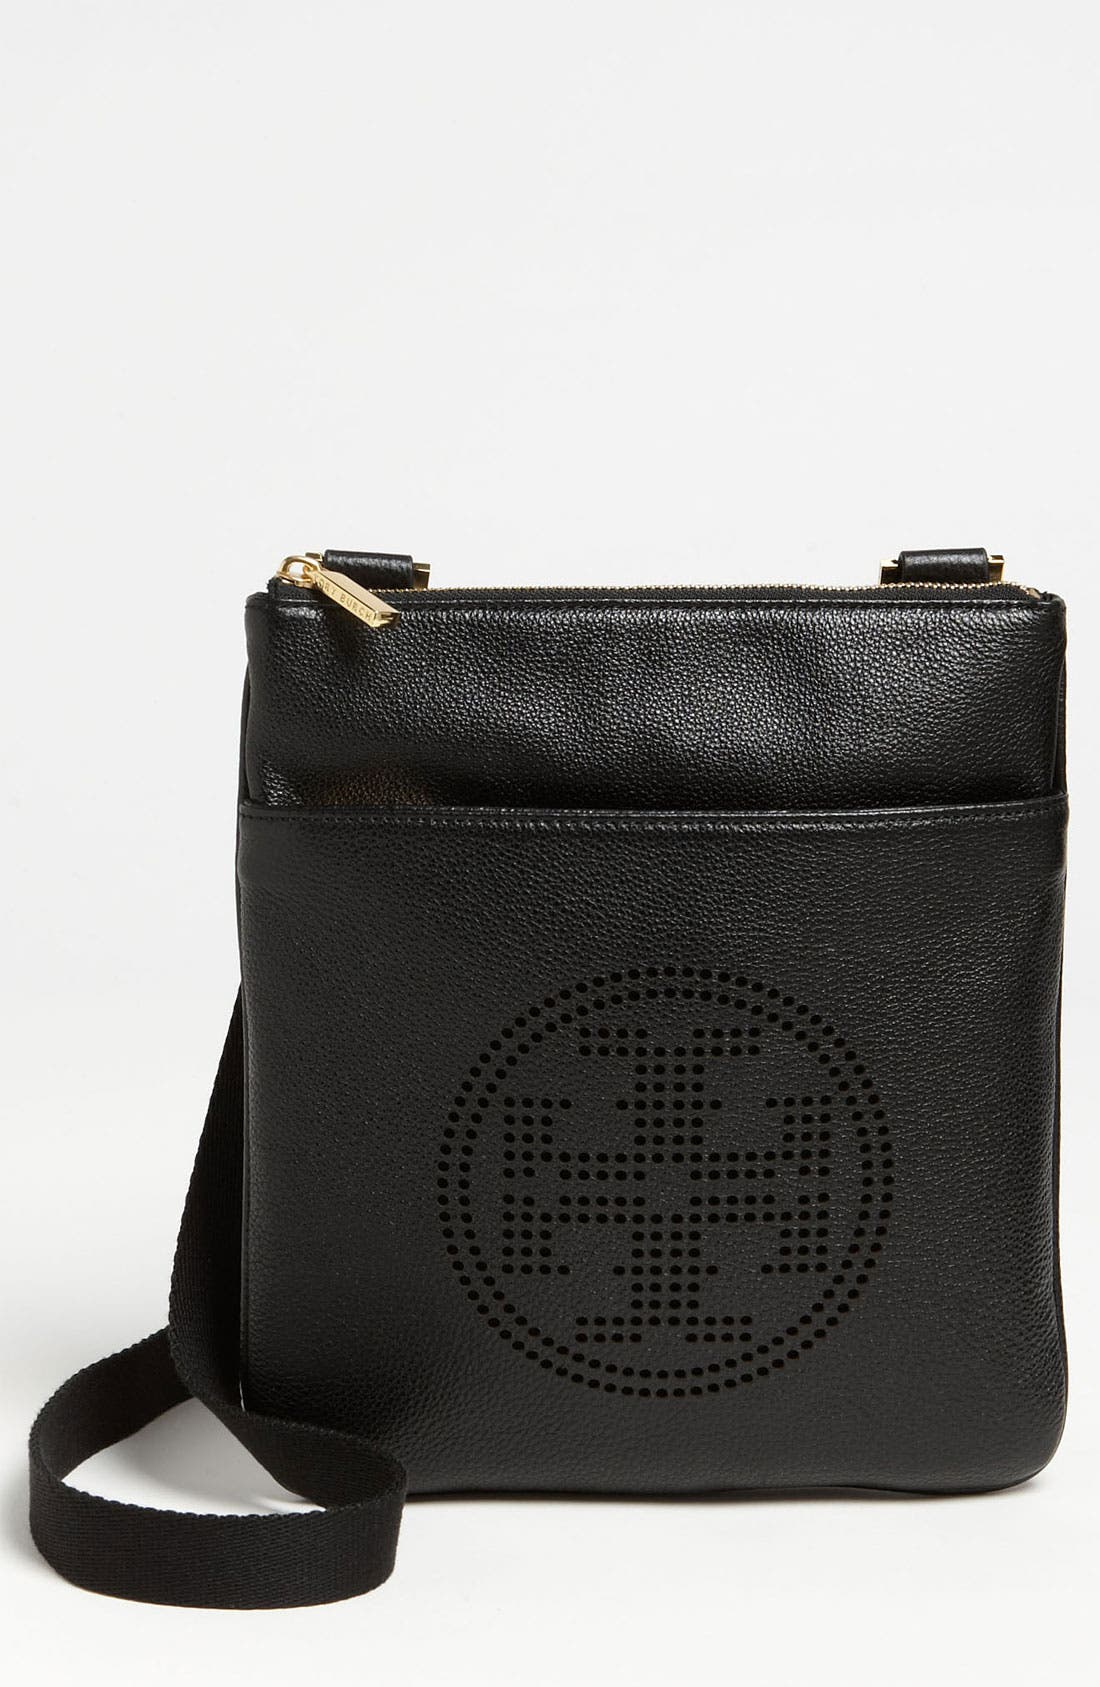 Main Image - Tory Burch Perforated Logo Crossbody Bag